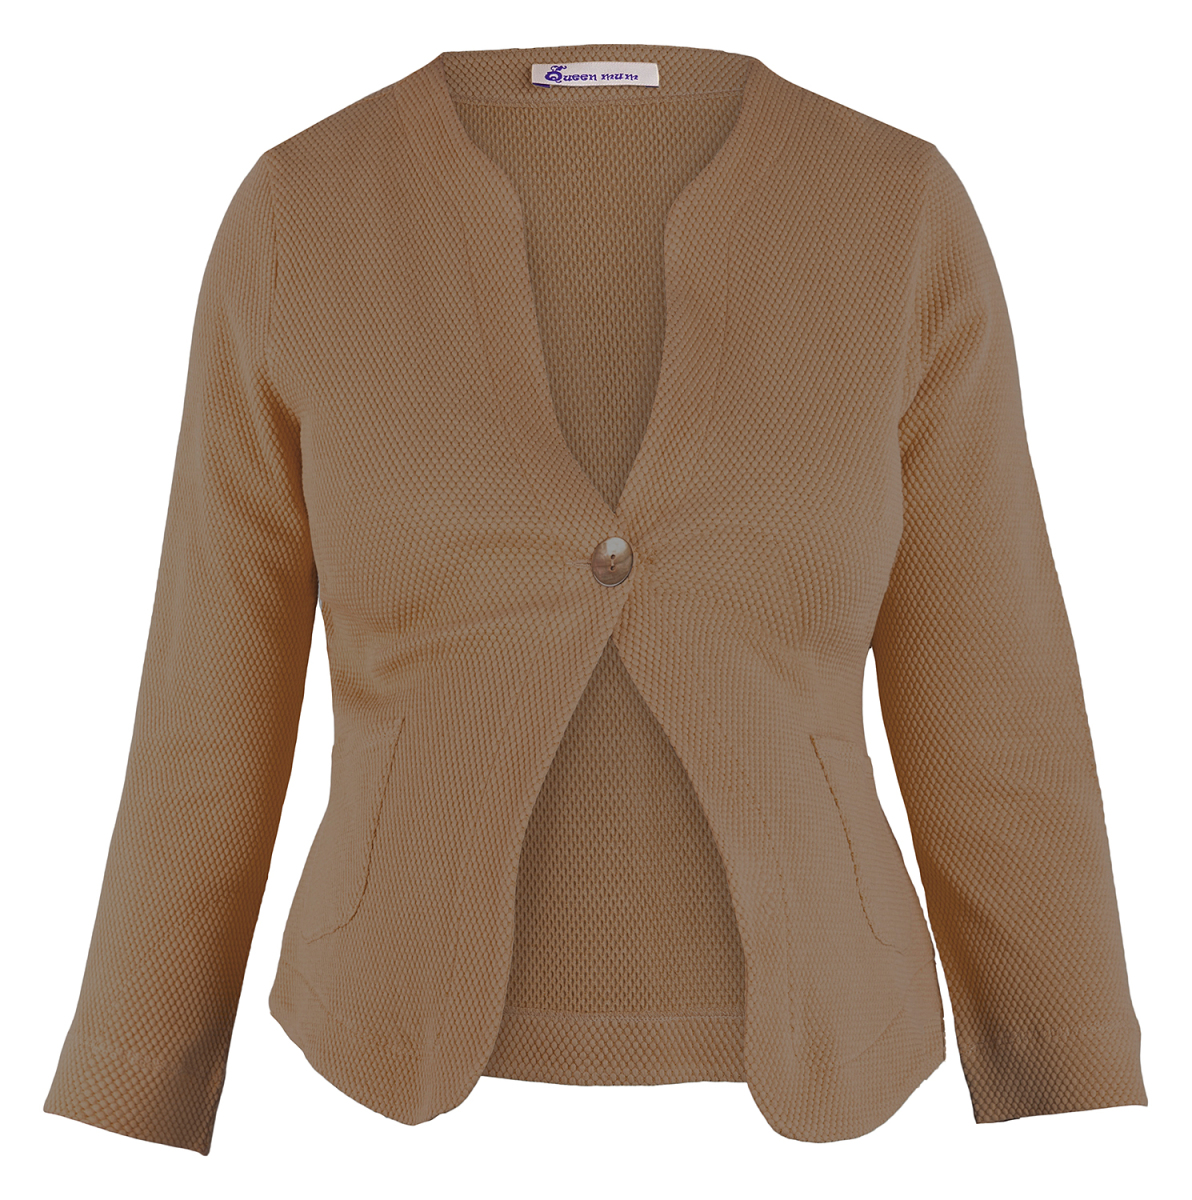 Queen mum Blazer - Brown - Positiekleding